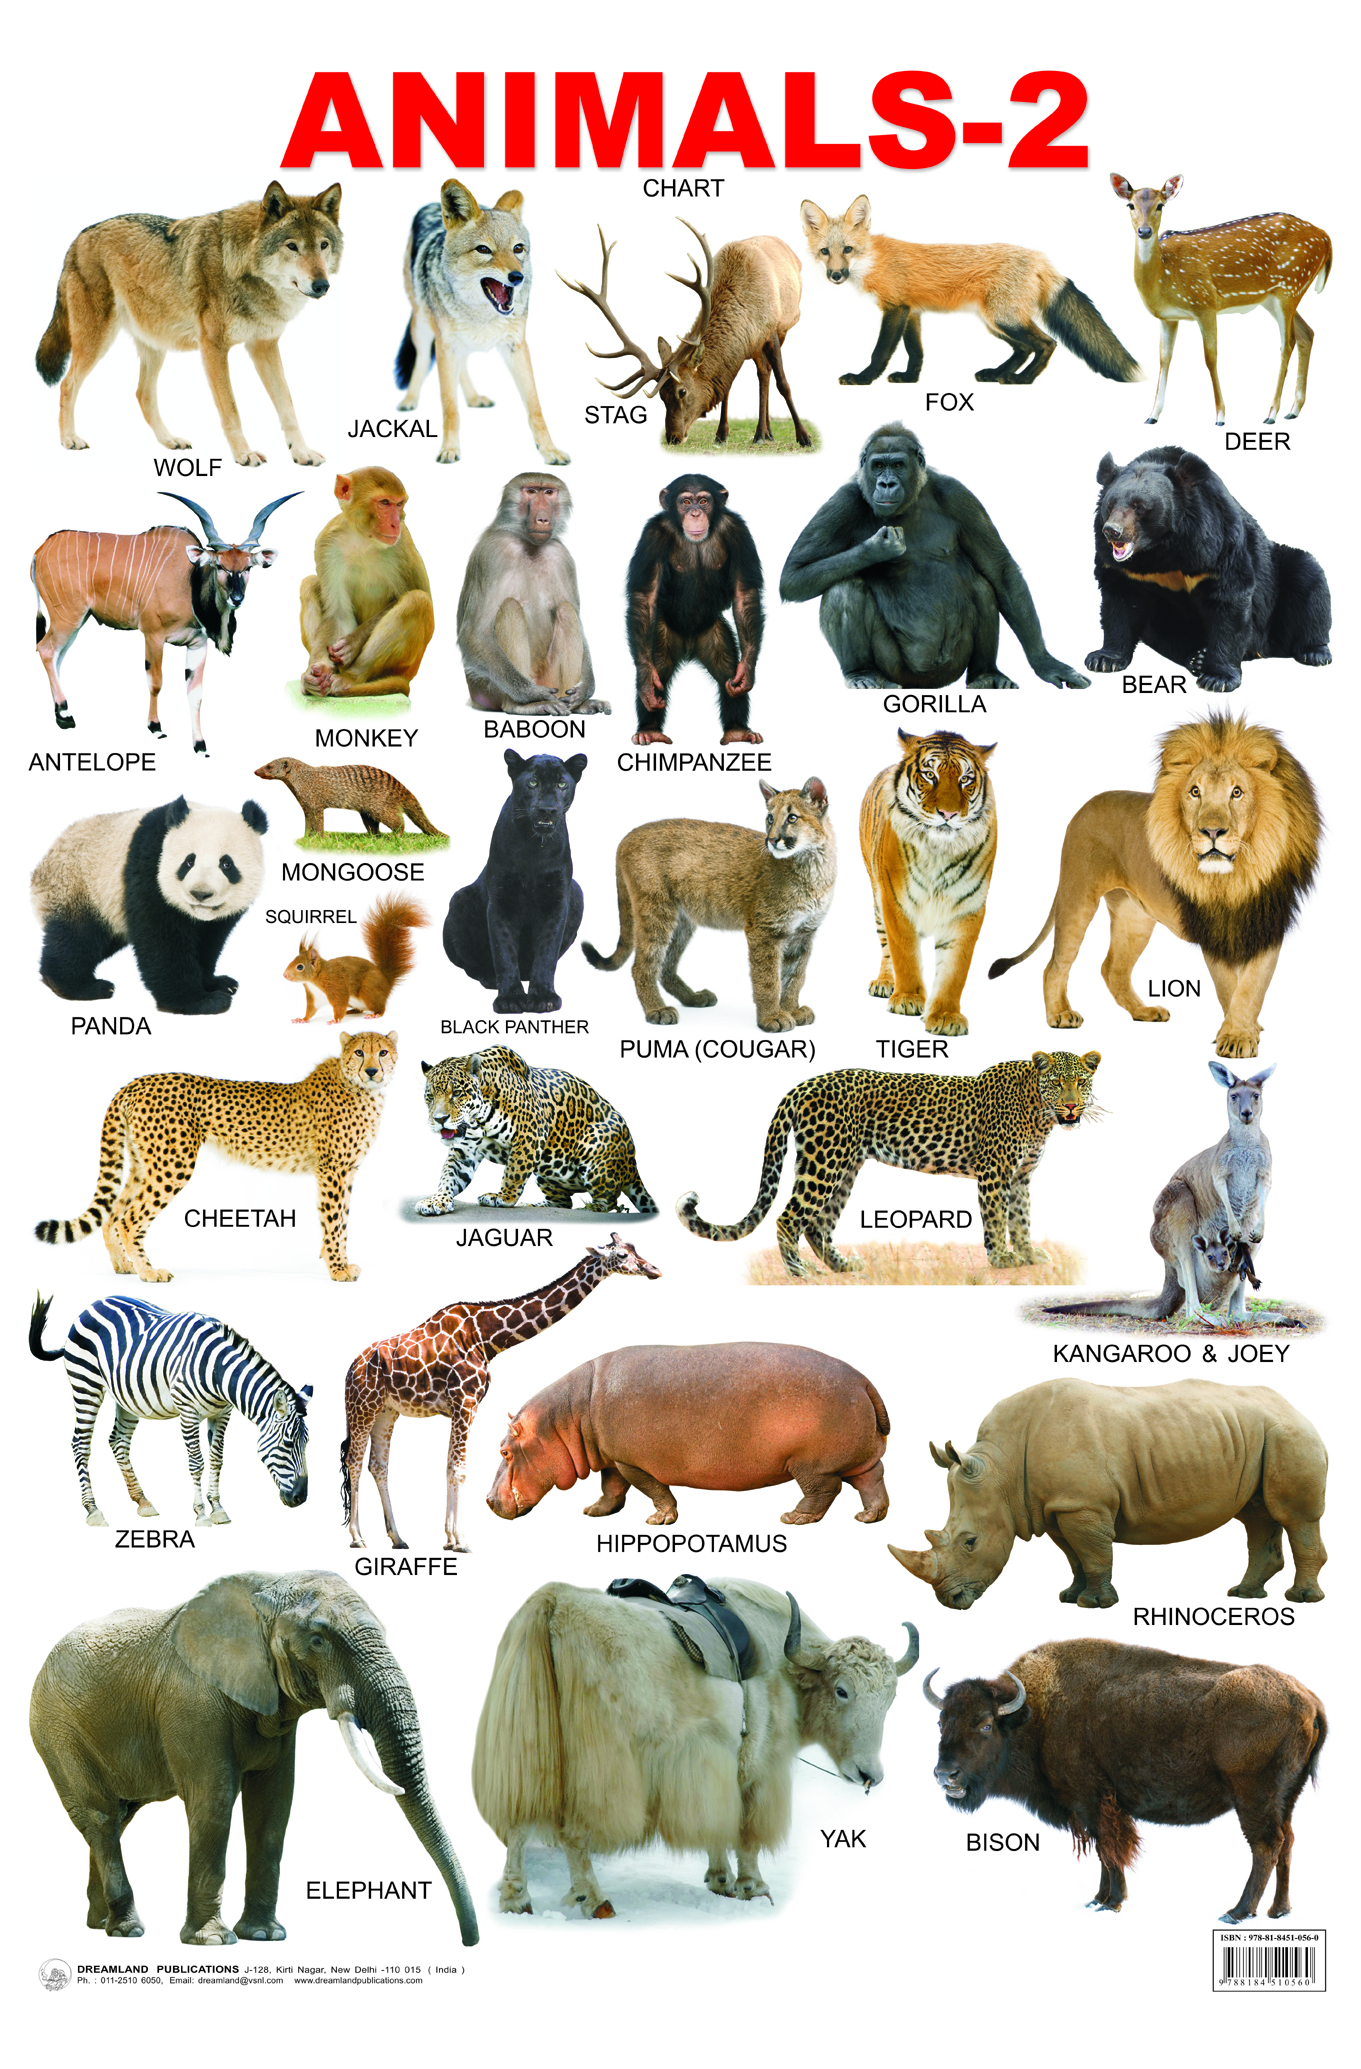 Domestic Animals Images, Stock Photos Vectors Shutterstock Pictures of domestic animals in india